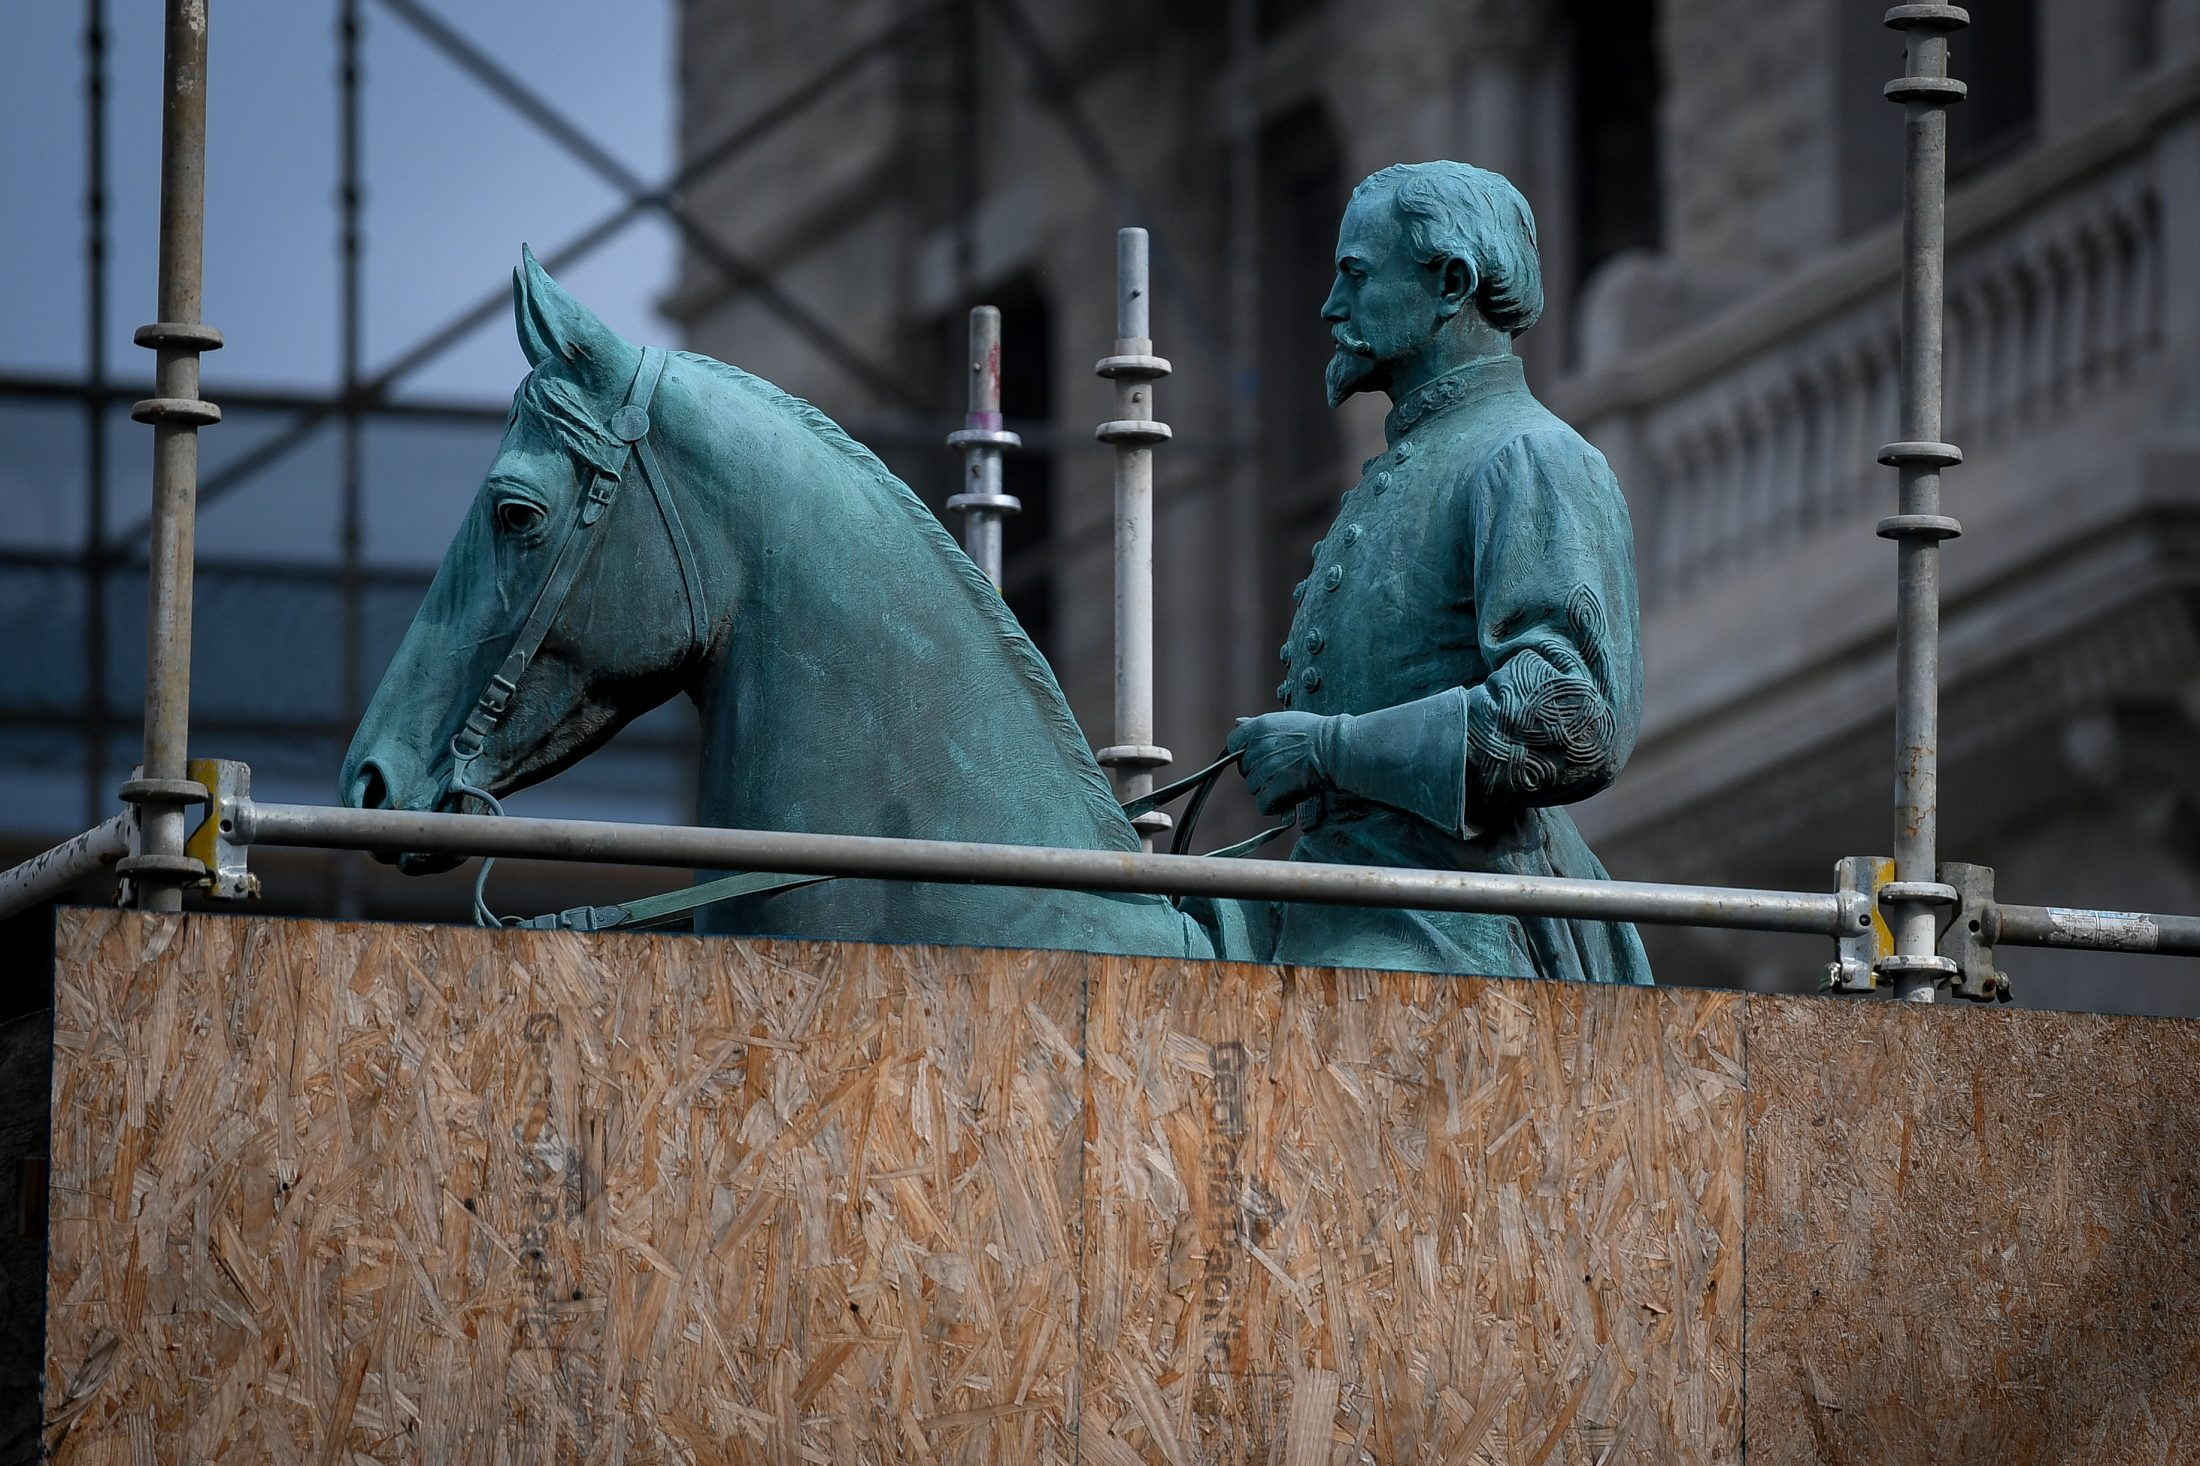 A monument to Confederate General John Hunt Morgan stands encased in a protective scaffolding because of local construction, outside the Historic Lexington Courthouse in Lexington, Kentucky. Photo by Bryan Woolston/Reuters